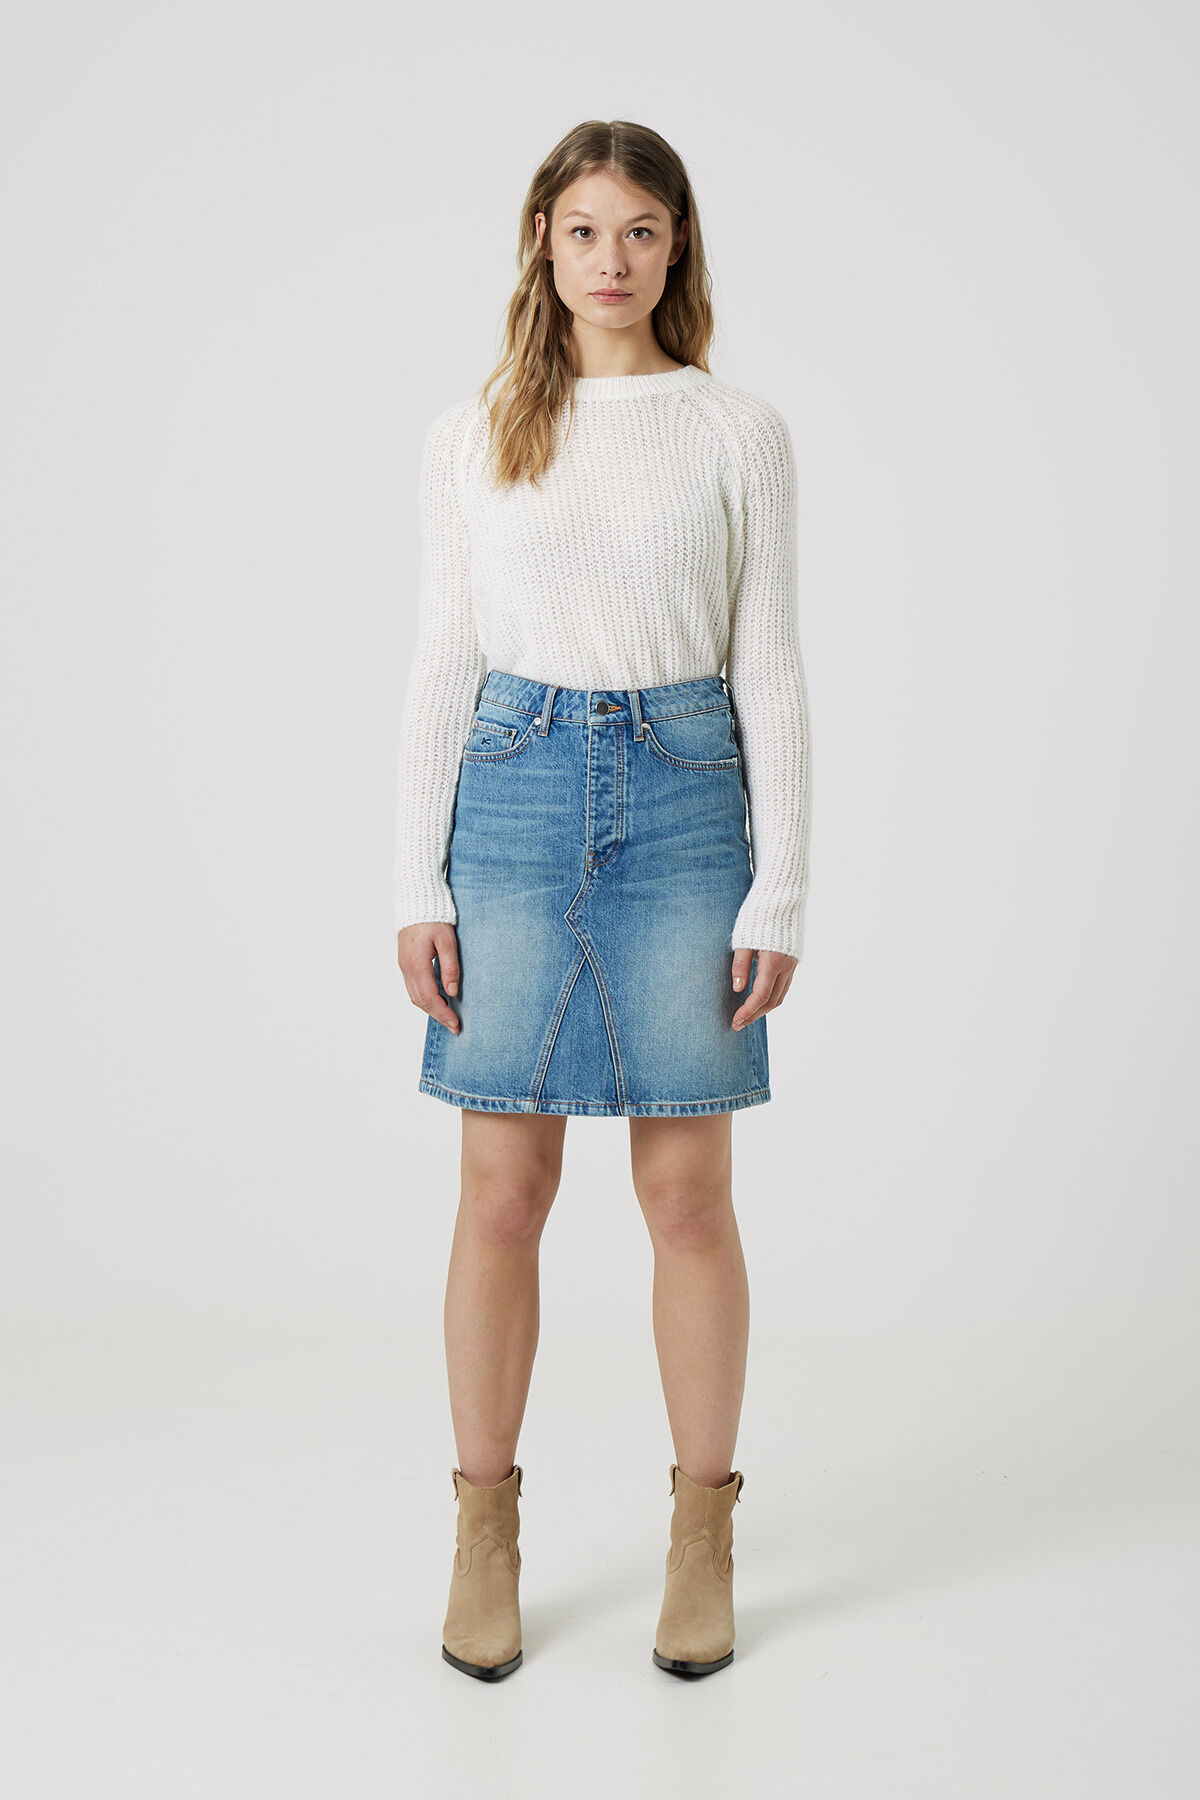 PIPER SKIRT Washed Indigo - A-line